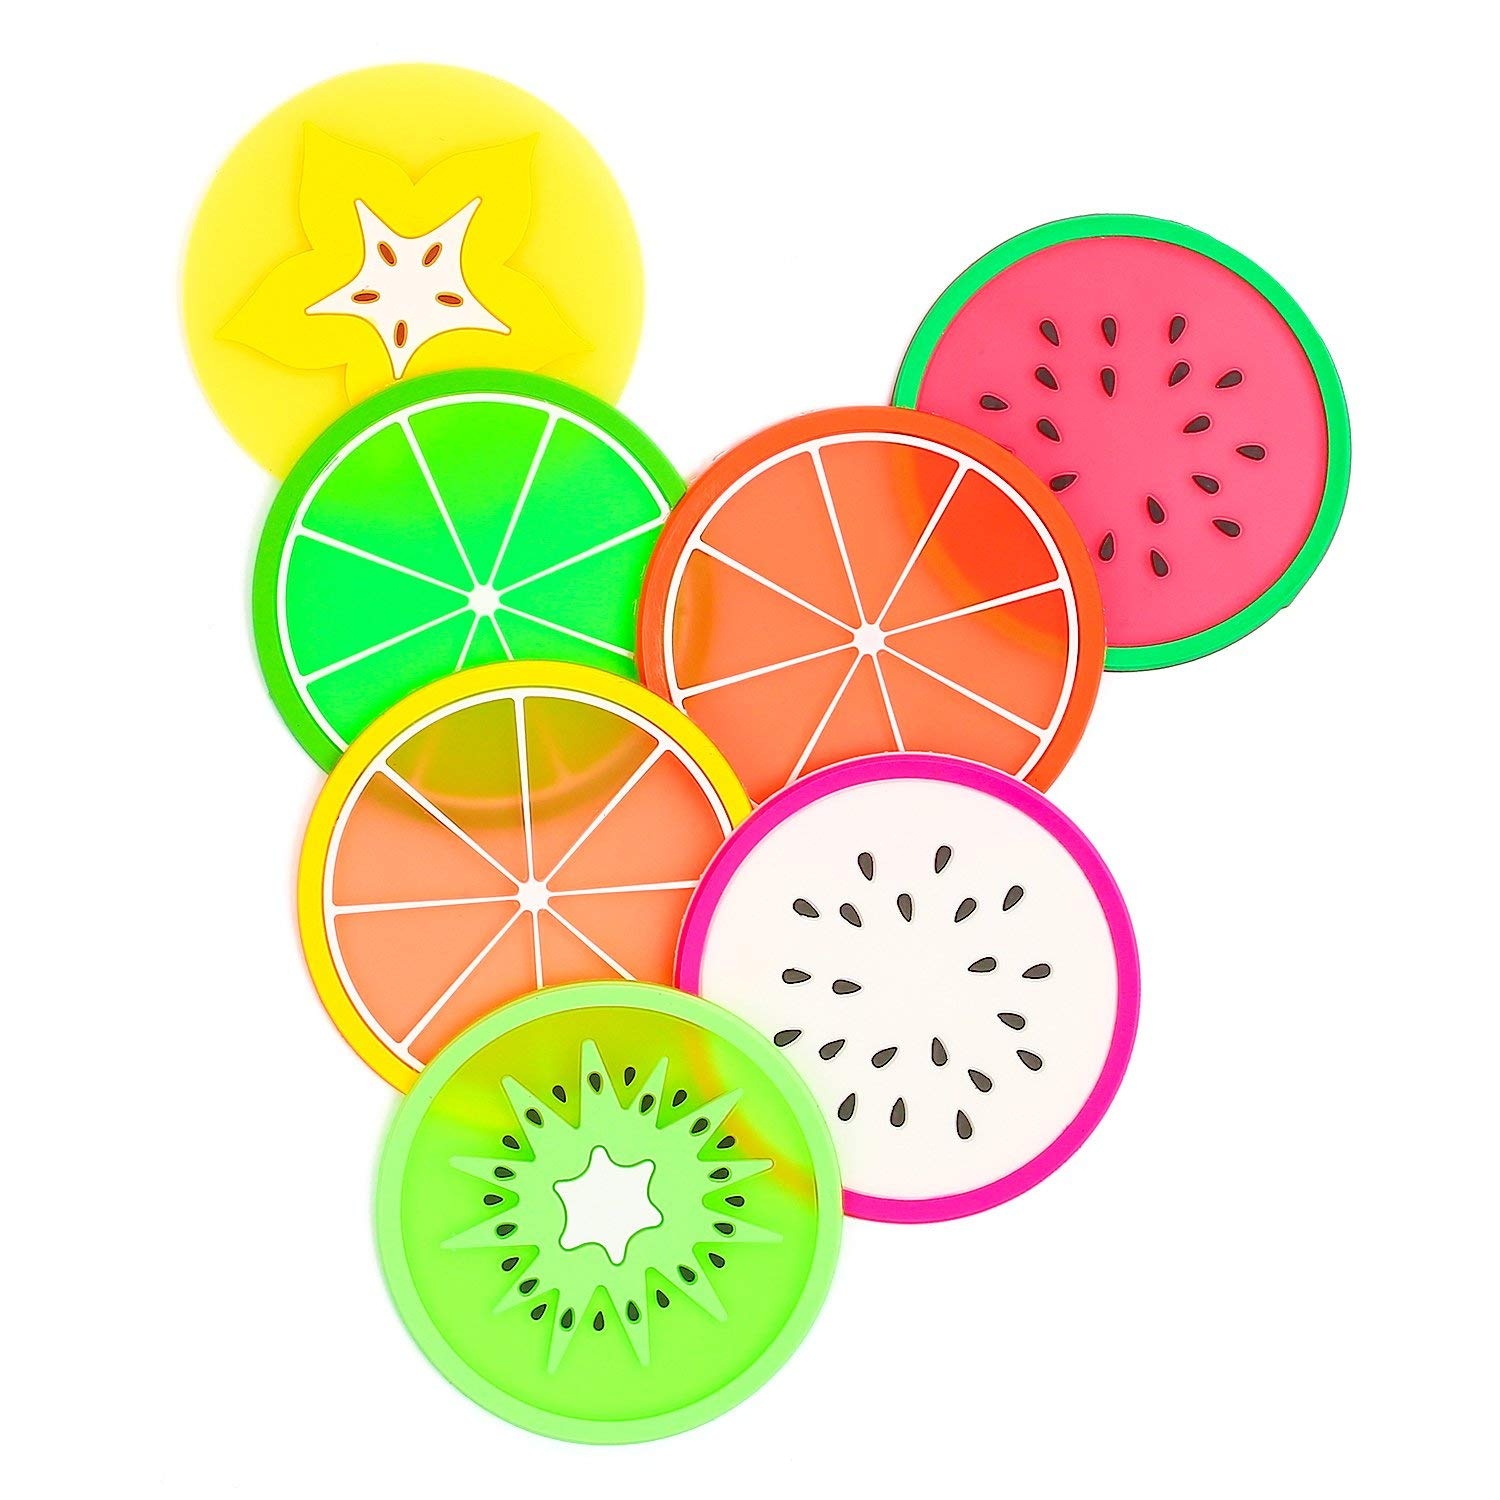 "Fruit Coaster, 7PCS 3.5"" Non Slip Coasters Heat Insulation Colorful Unique Slice Silicone Drink Cup Mat for Drinks Prevent Furniture and Tabletop by BmStar"